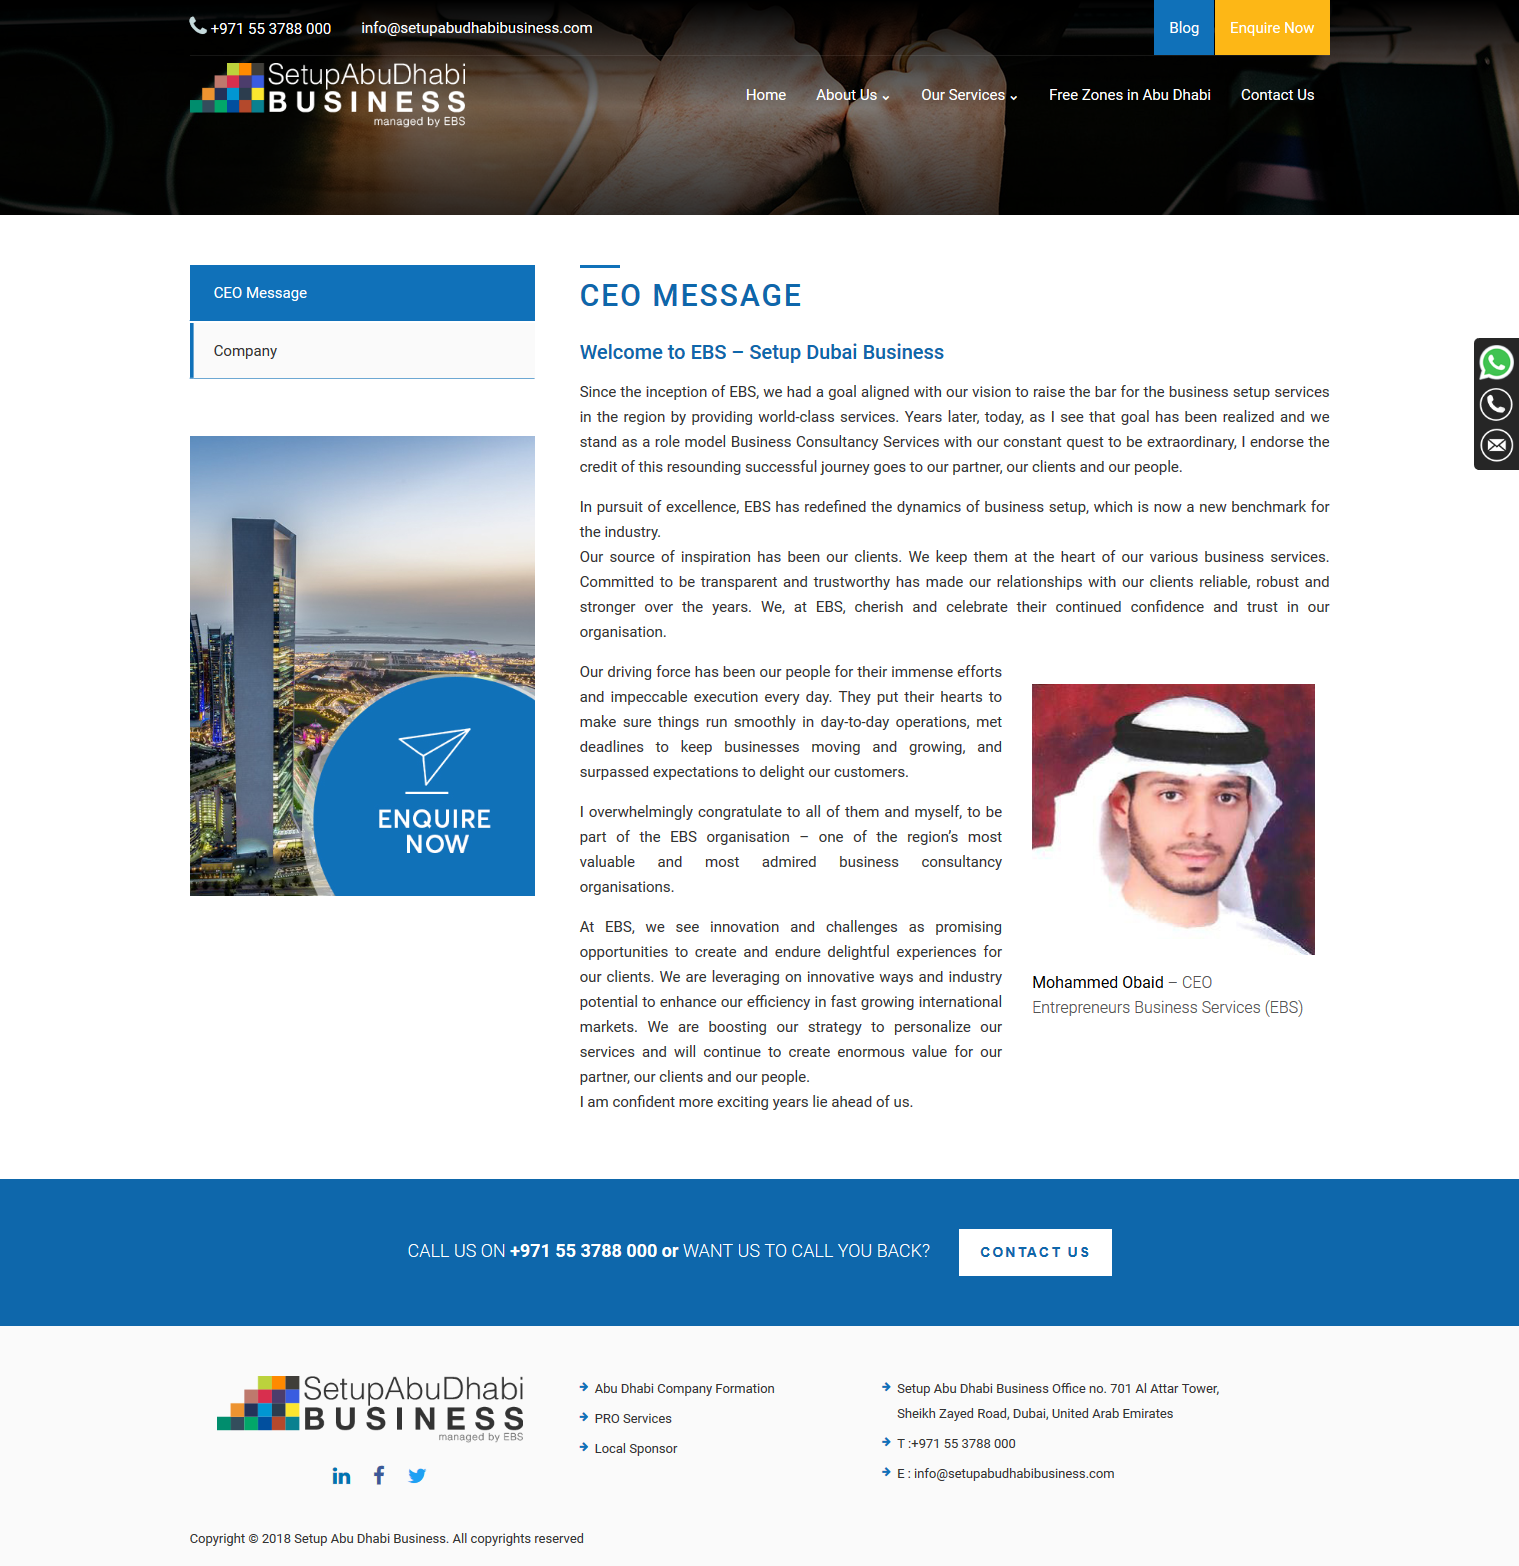 Setup Abu Dhabi Business